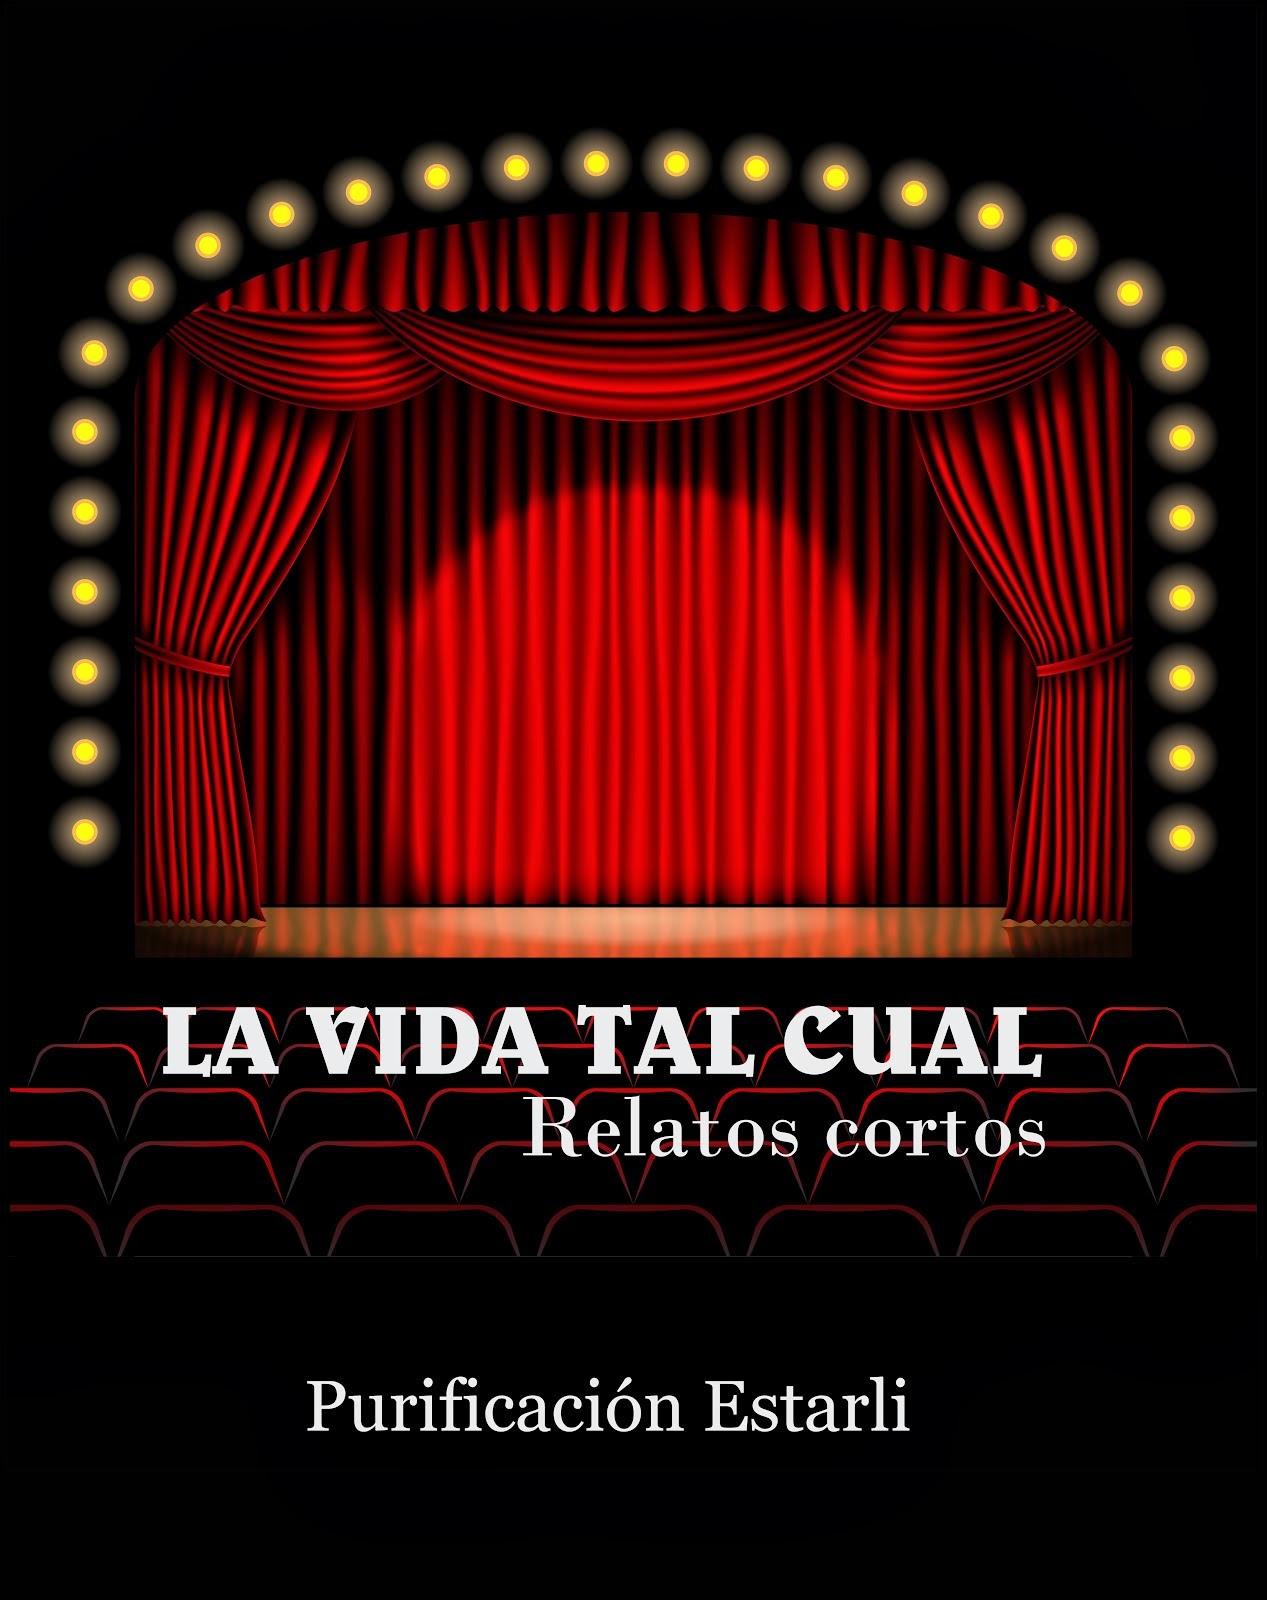 http://www.amazon.es/VIDA-TAL-CUAL-Relatos-cortos-ebook/dp/B00HSIU10G/ref=sr_1_4?s=books&ie=UTF8&qid=1401188045&sr=1-4